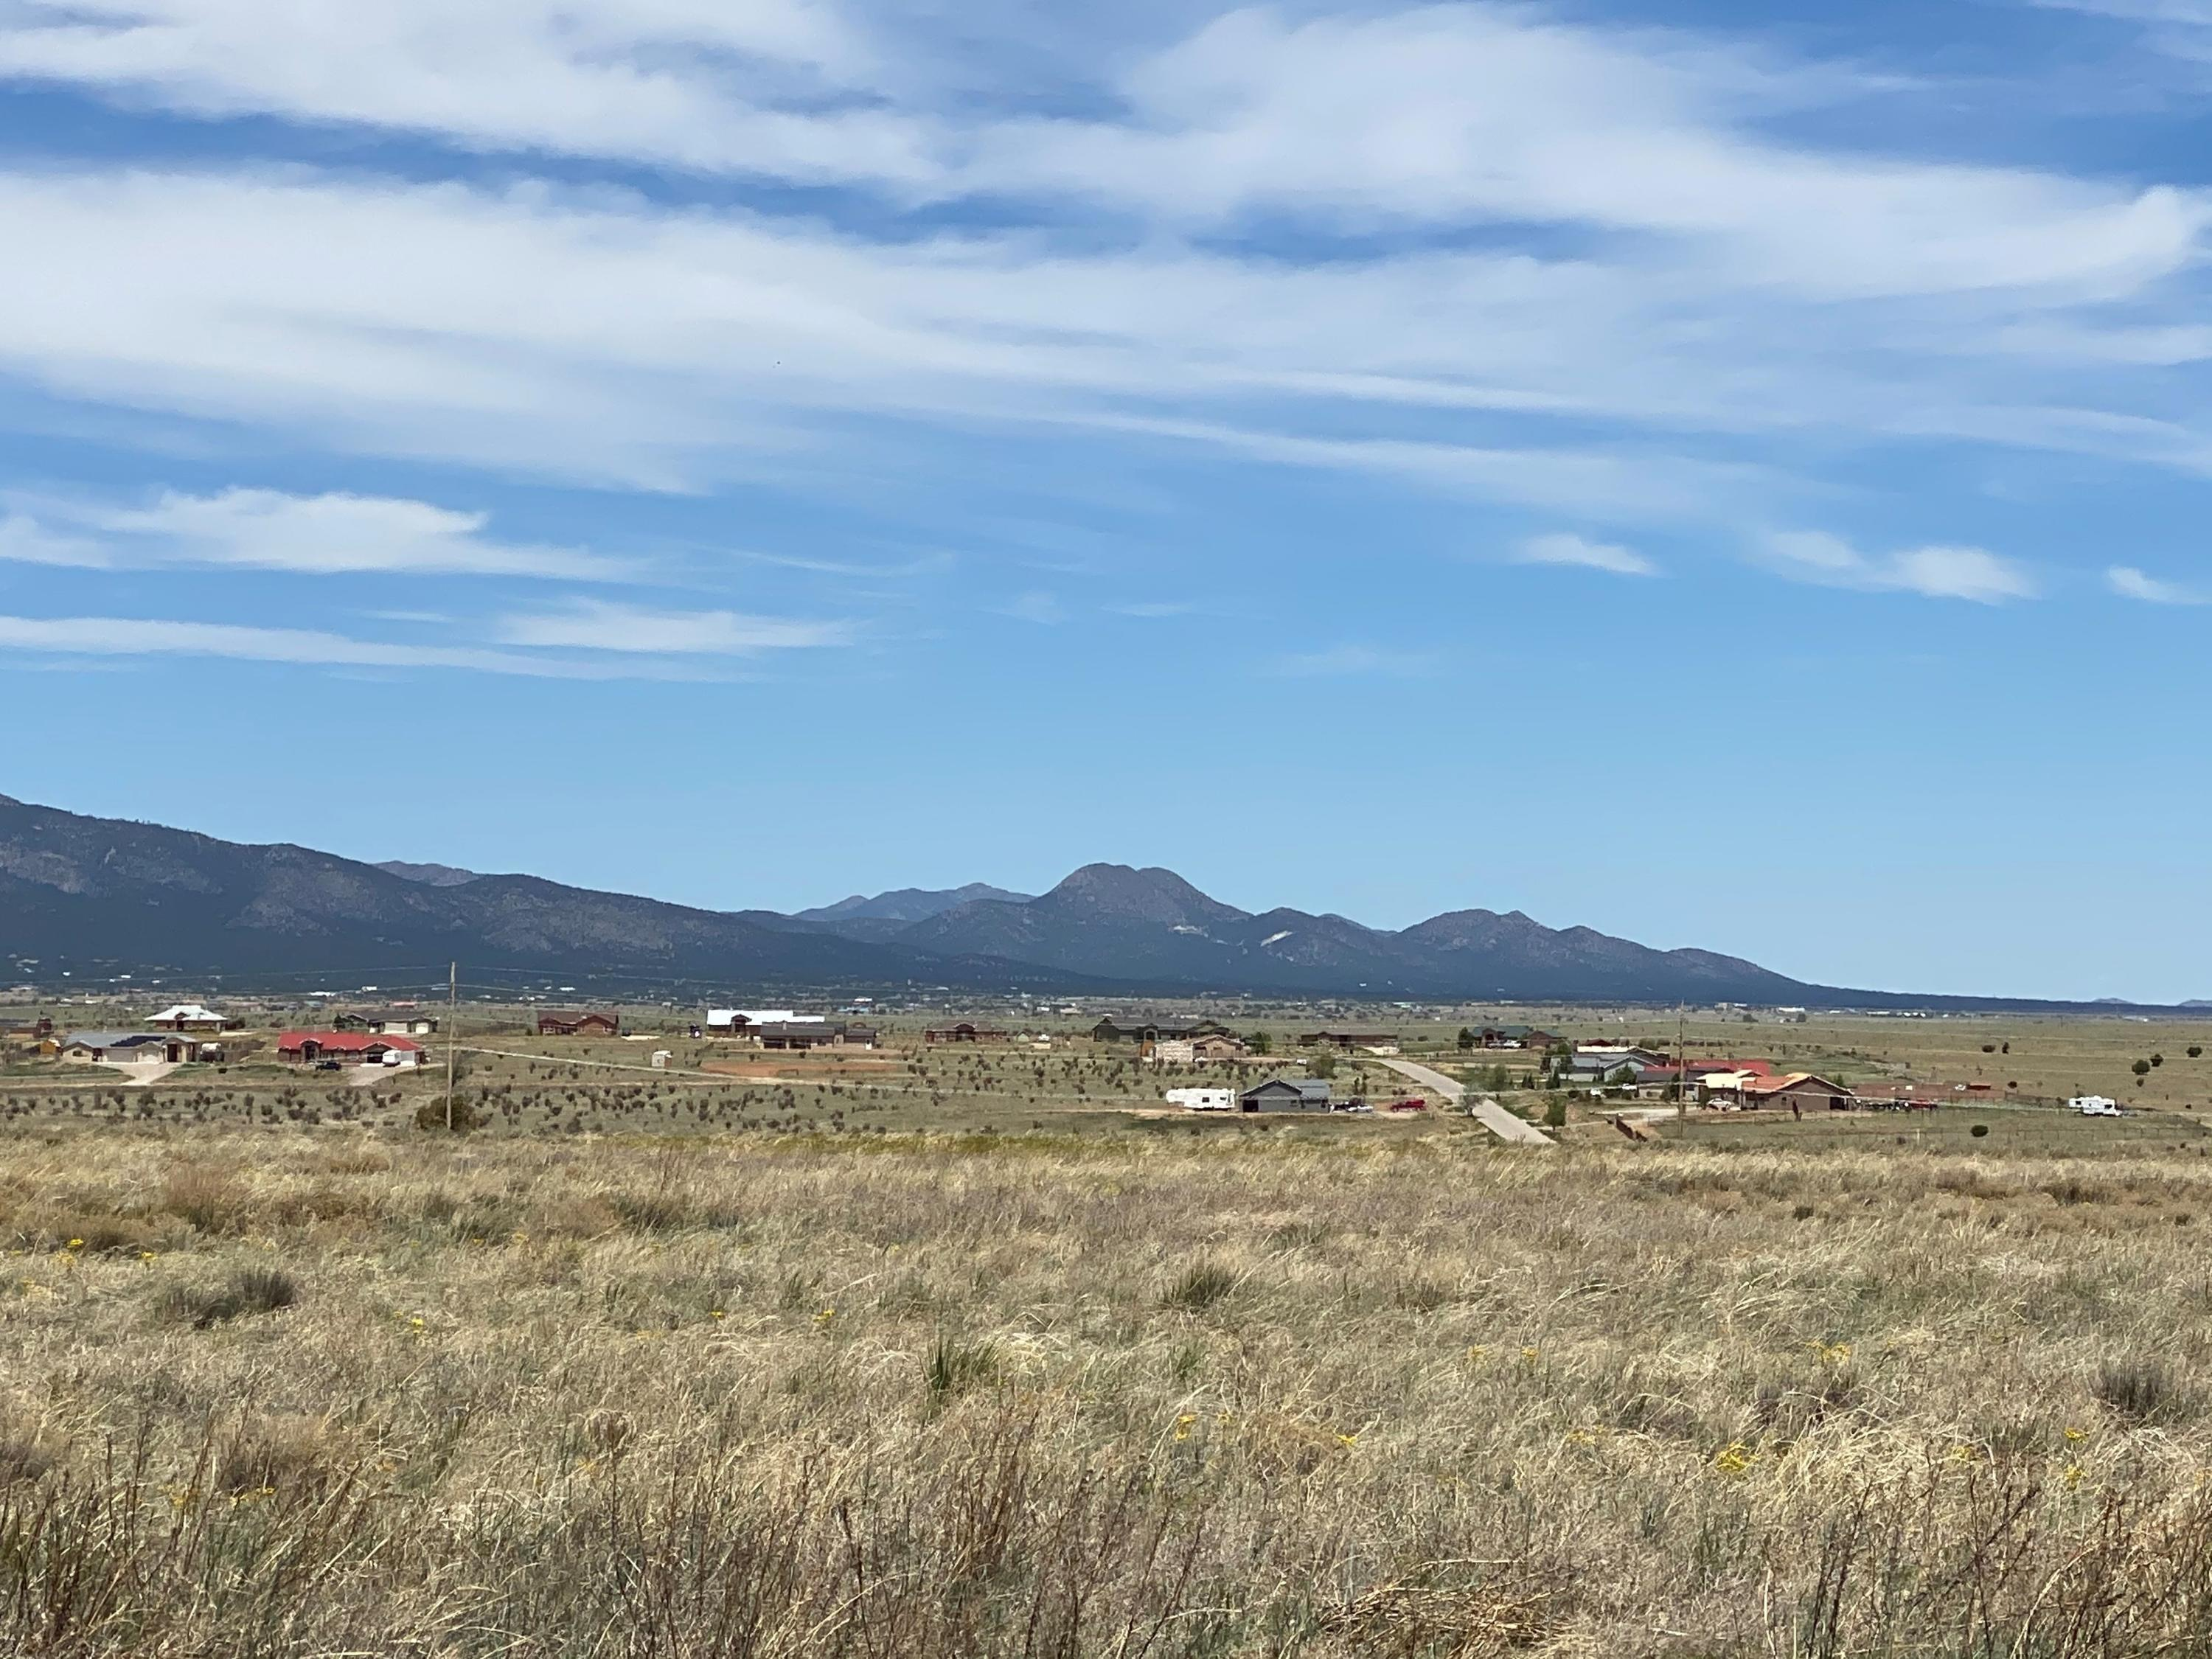 25 Blanco Drive, Edgewood, NM 87015 - Edgewood, NM real estate listing